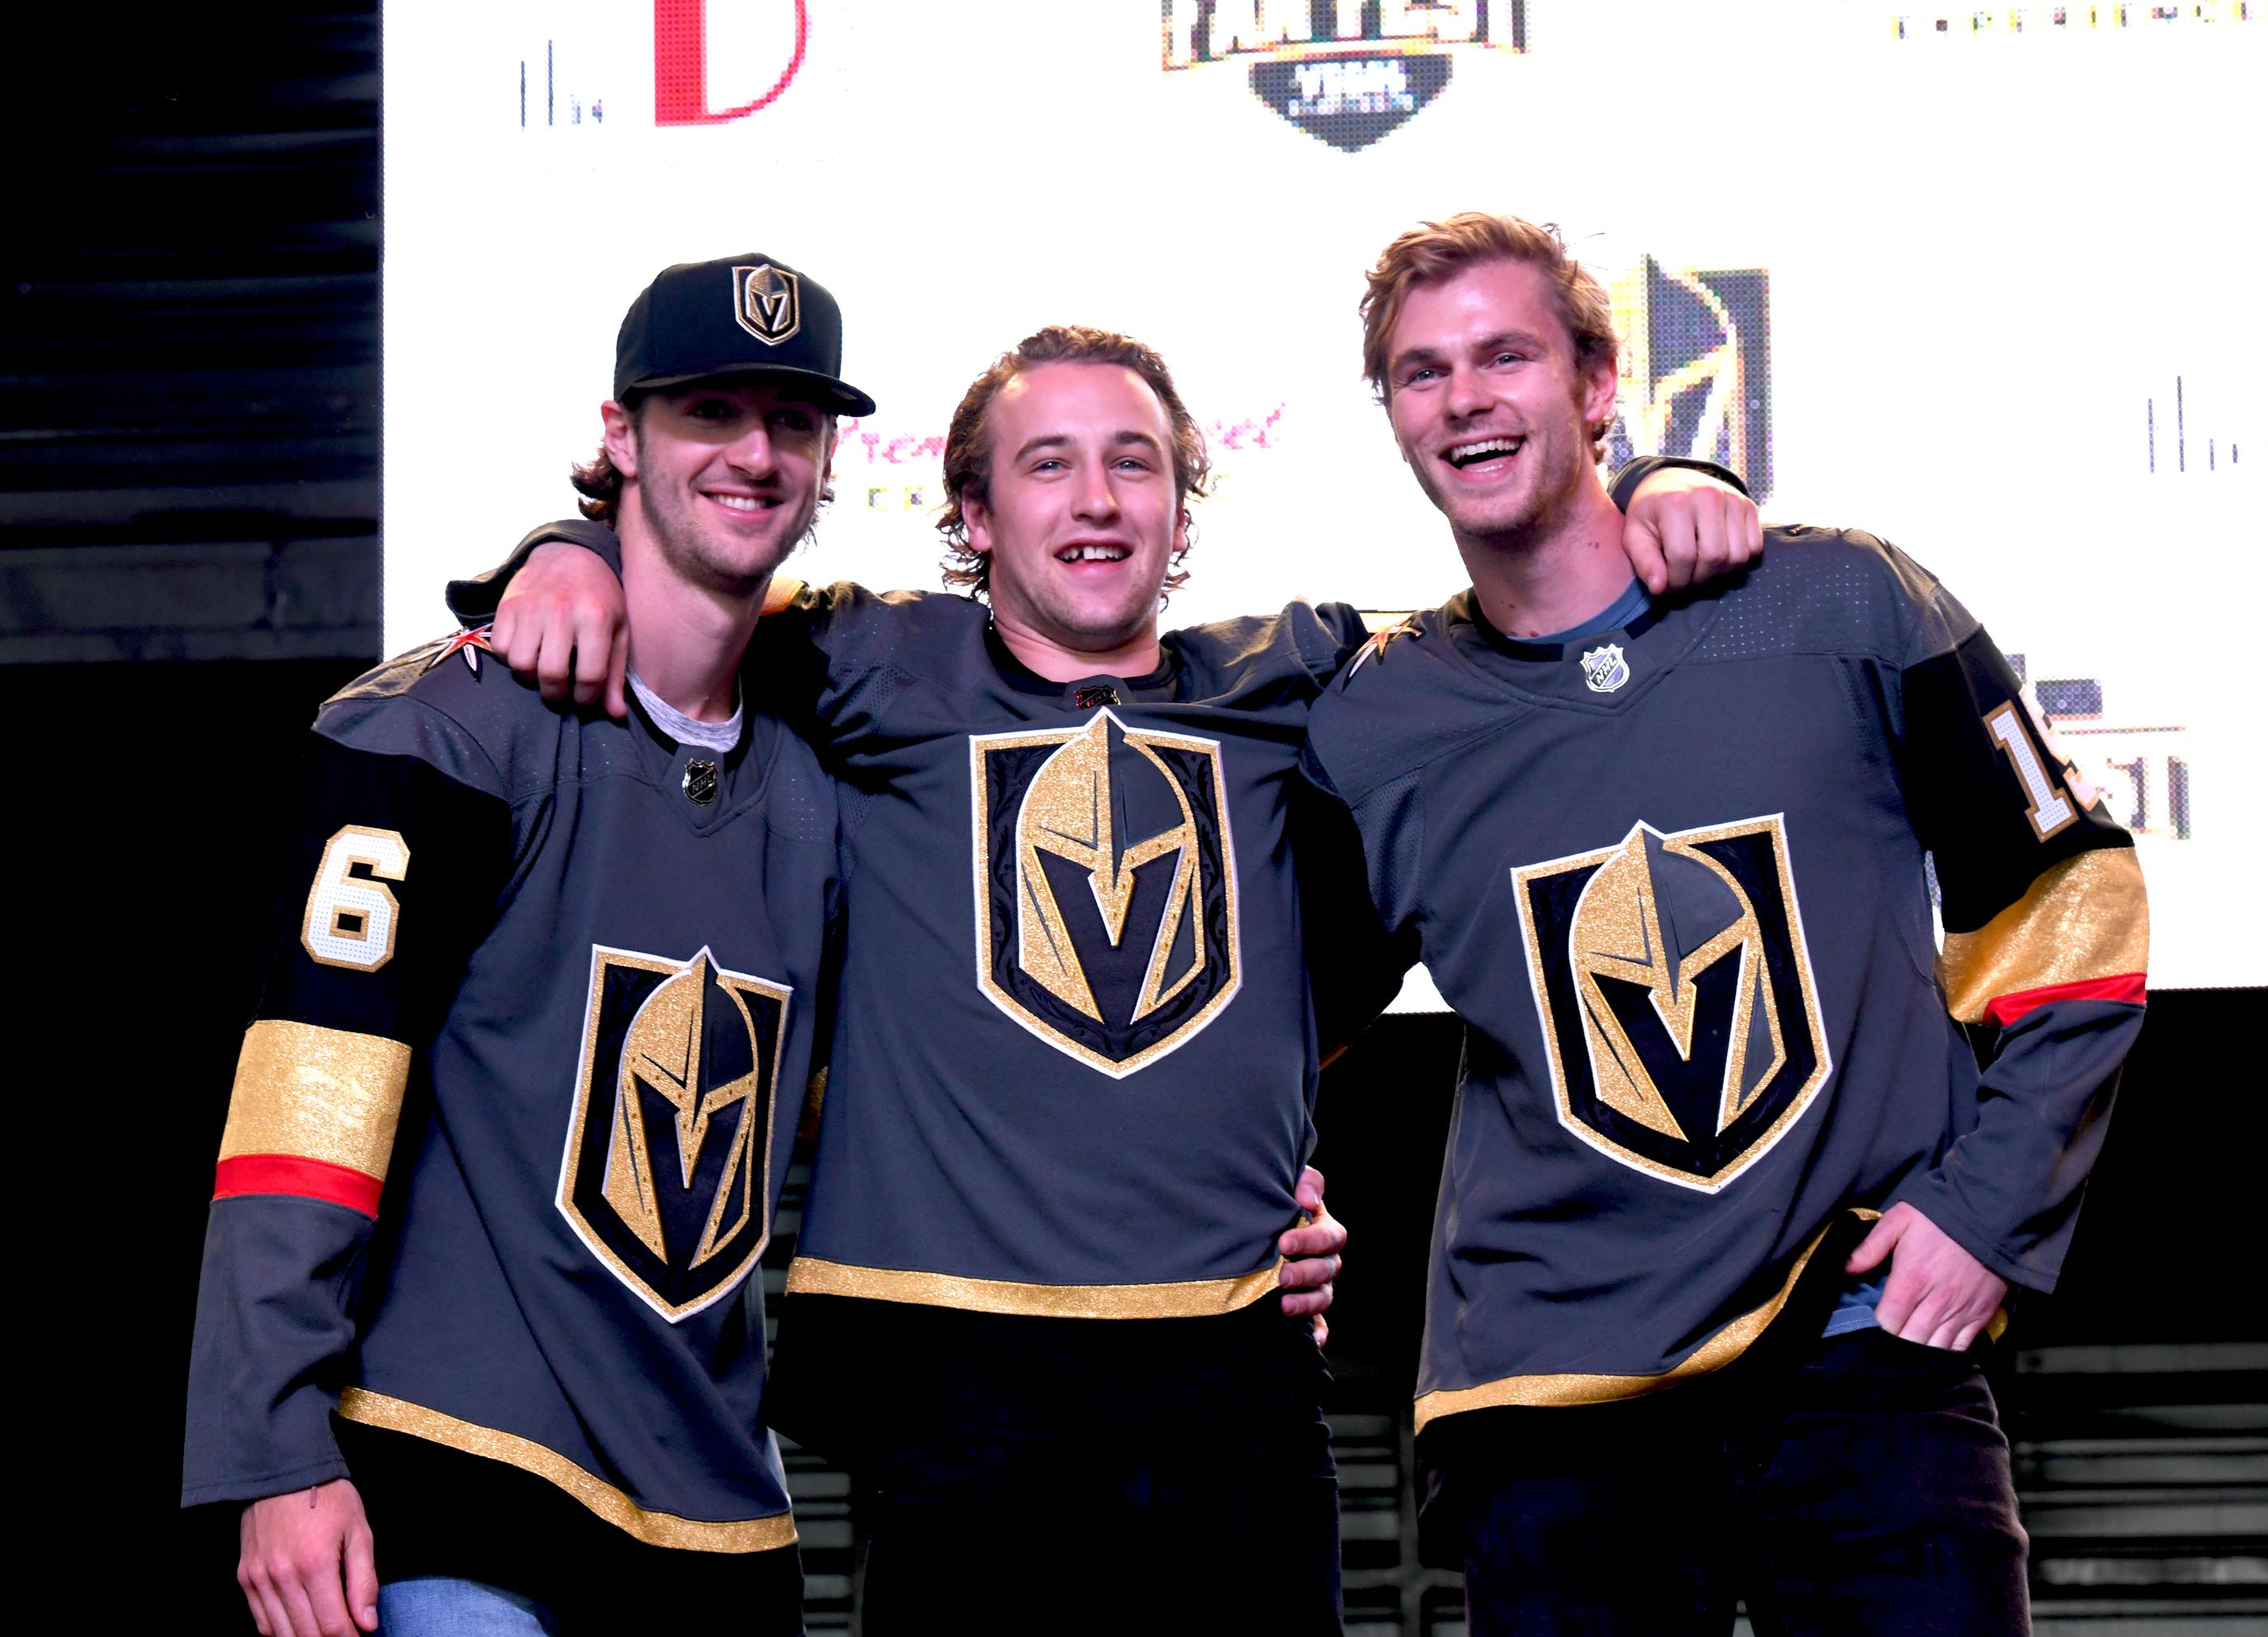 The Golden Knights host a Fan Fest with the D Las Vegas and Fremont Street Experience. Las Vegas Golden Knights hockey players Colin Miller (l), Brendan Leipsic (c) and  Jon Merrill (r) enjoy the roar of the fans as the team takes the stage at Fremont Street Experience. Sunday, January 14, 2017. CREDIT: Glenn Pinkerton/Las Vegas News Bureau